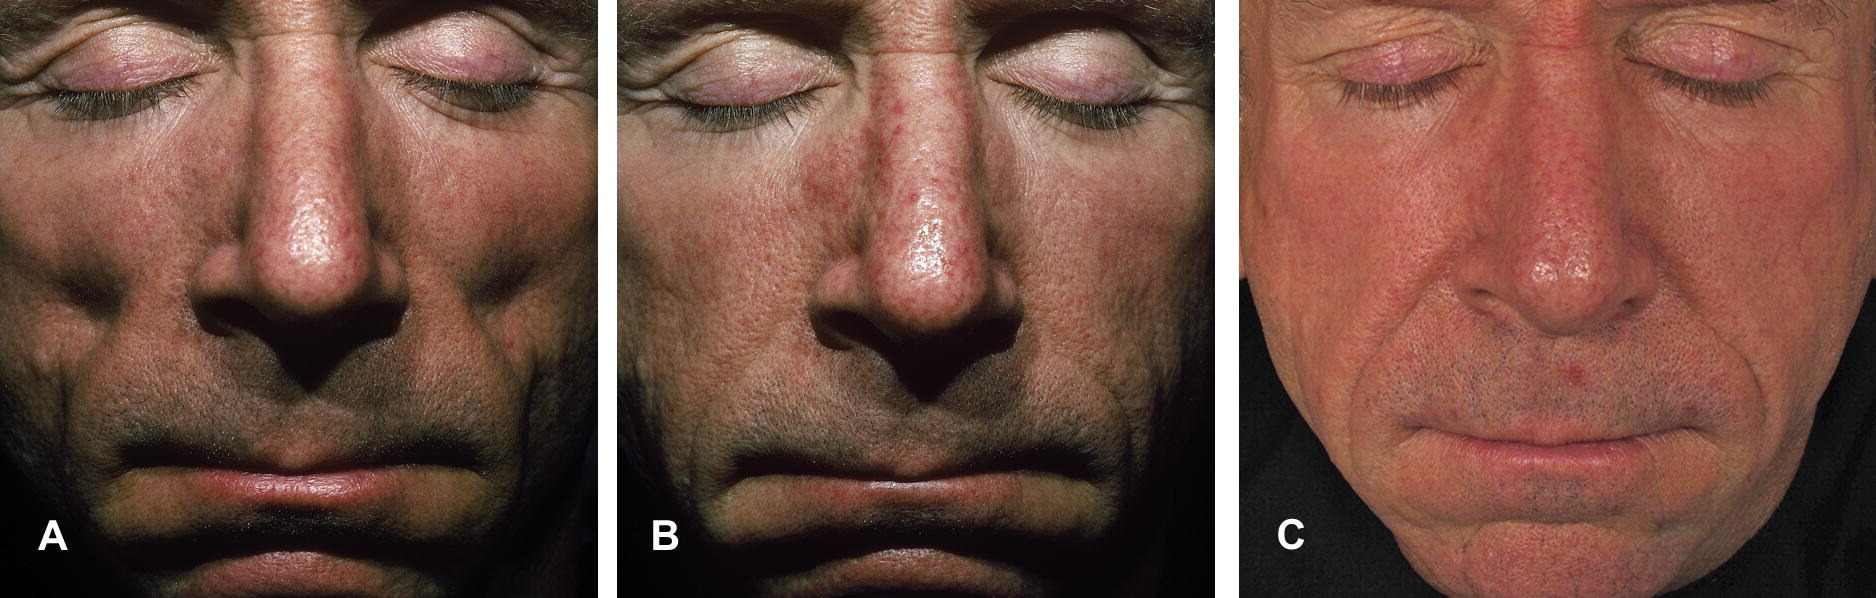 Lipoatrophy of facial